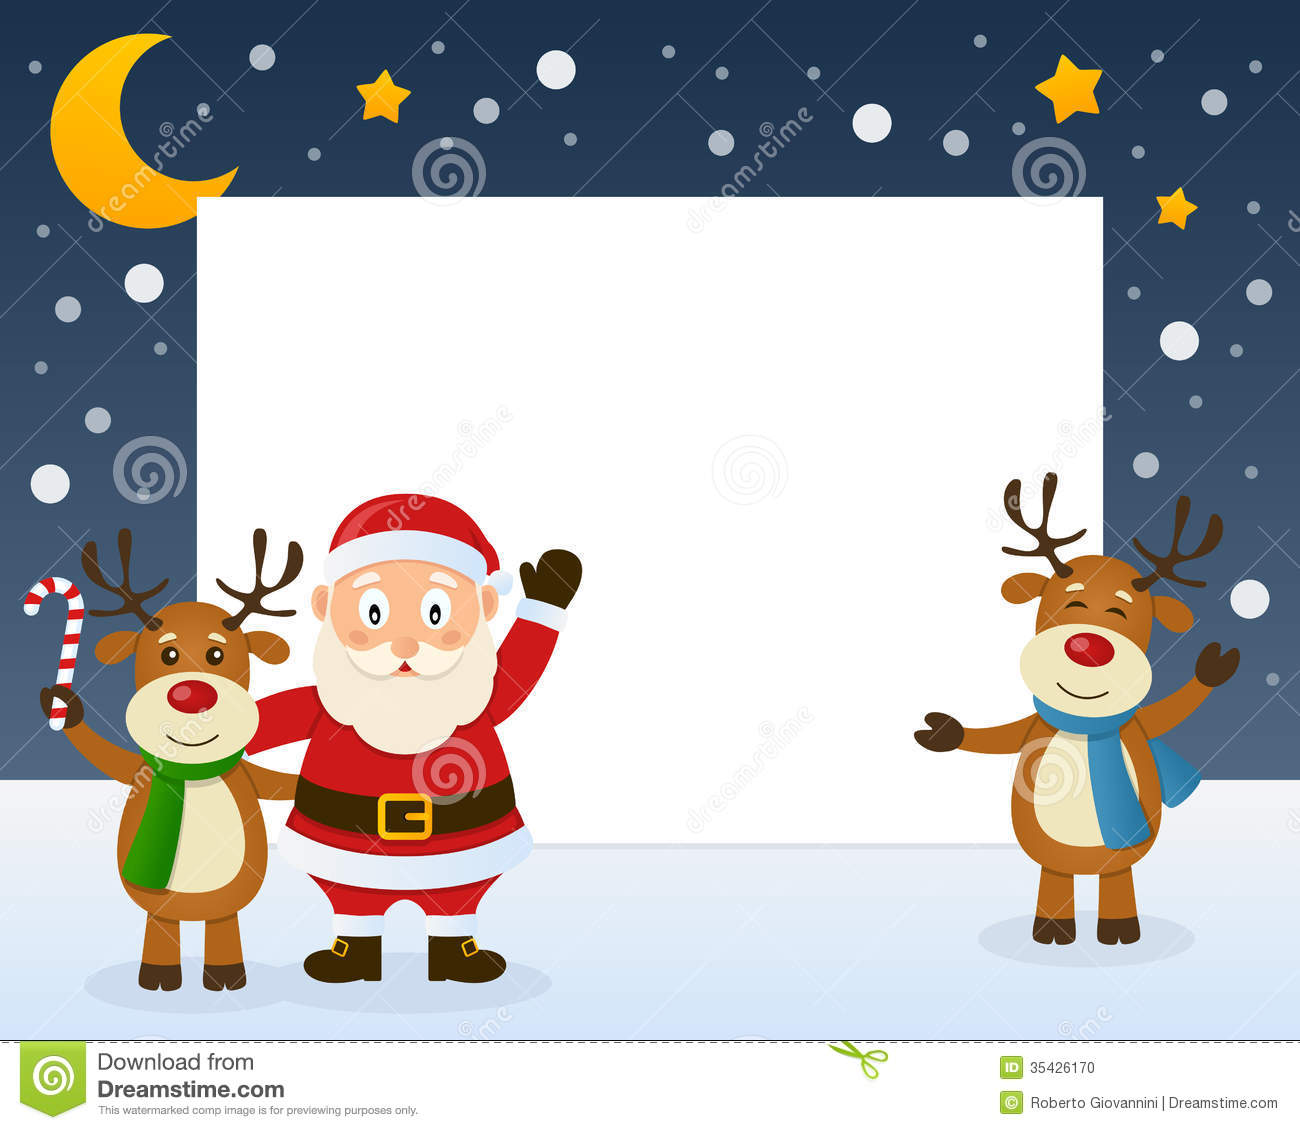 Santa Claus Character And Two Cute Reindeer On The Snow  Eps File